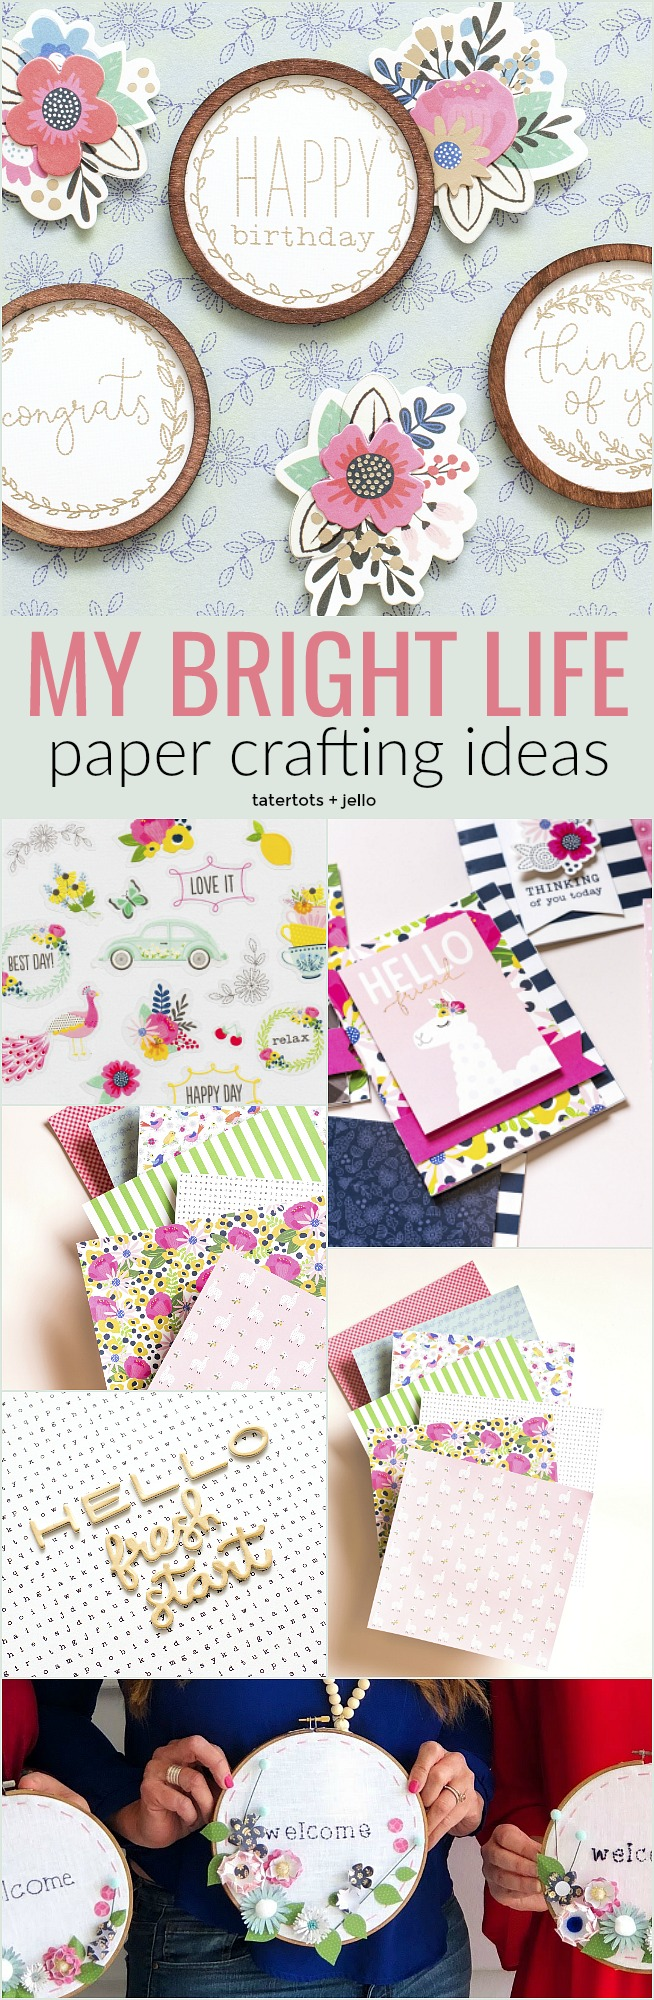 My Bright Lifenew paper line-- bright colors, vintage pyrex, silhouettes, easy tags, LAMAS, beautiful florals AND embroidery hoop sayings. You can make cards, gift ideas, home decor projects and more!